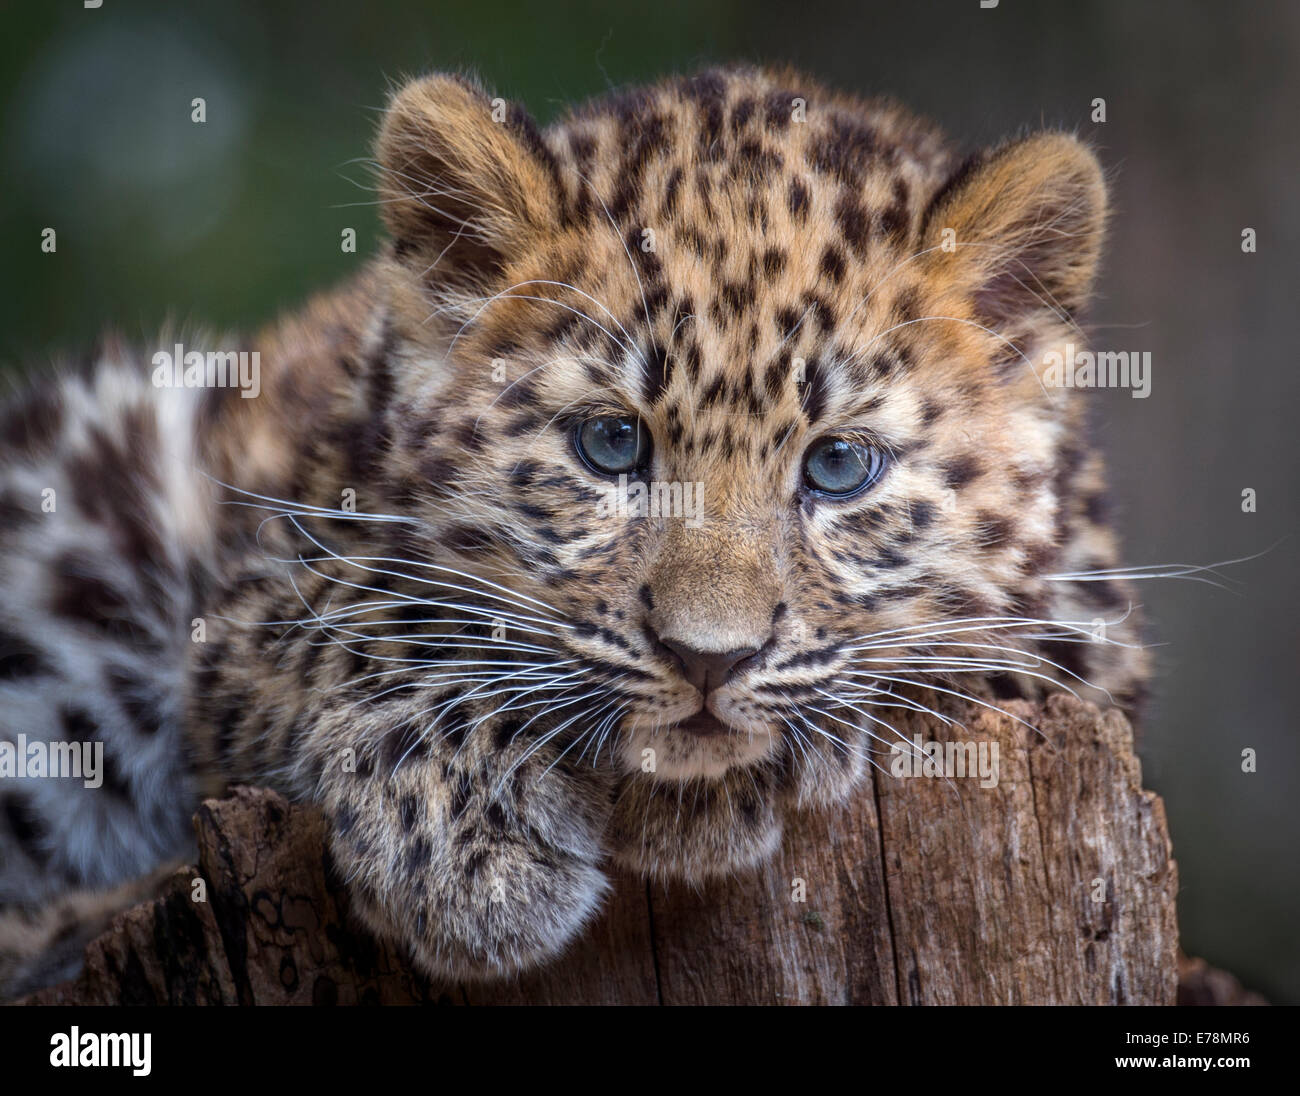 Female Amur leopard cub leaning on tree stump - Stock Image